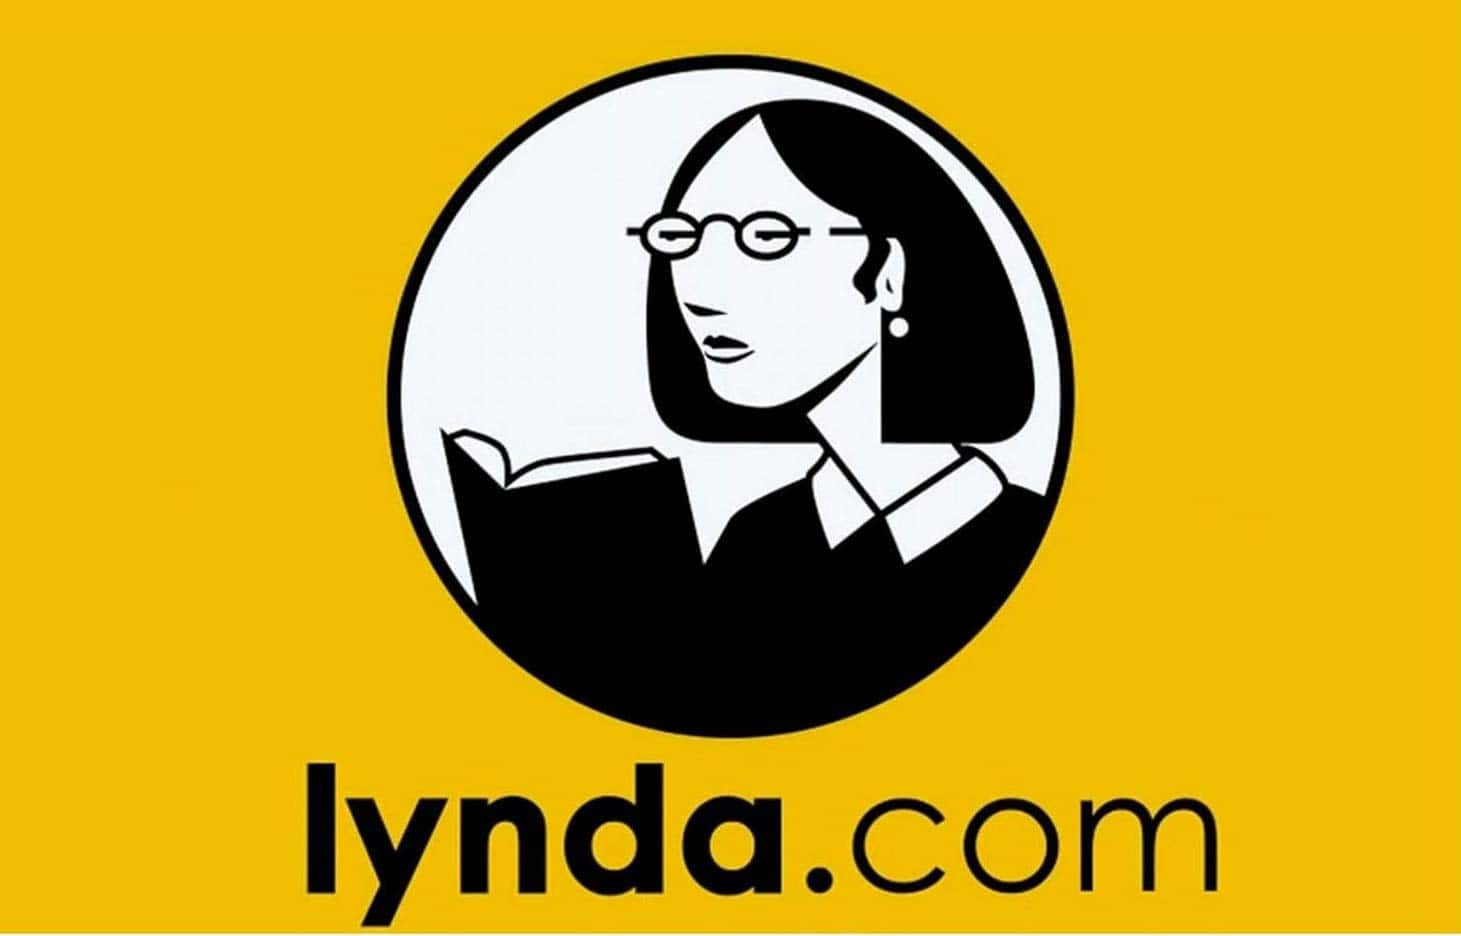 Image result for what is lynda.com